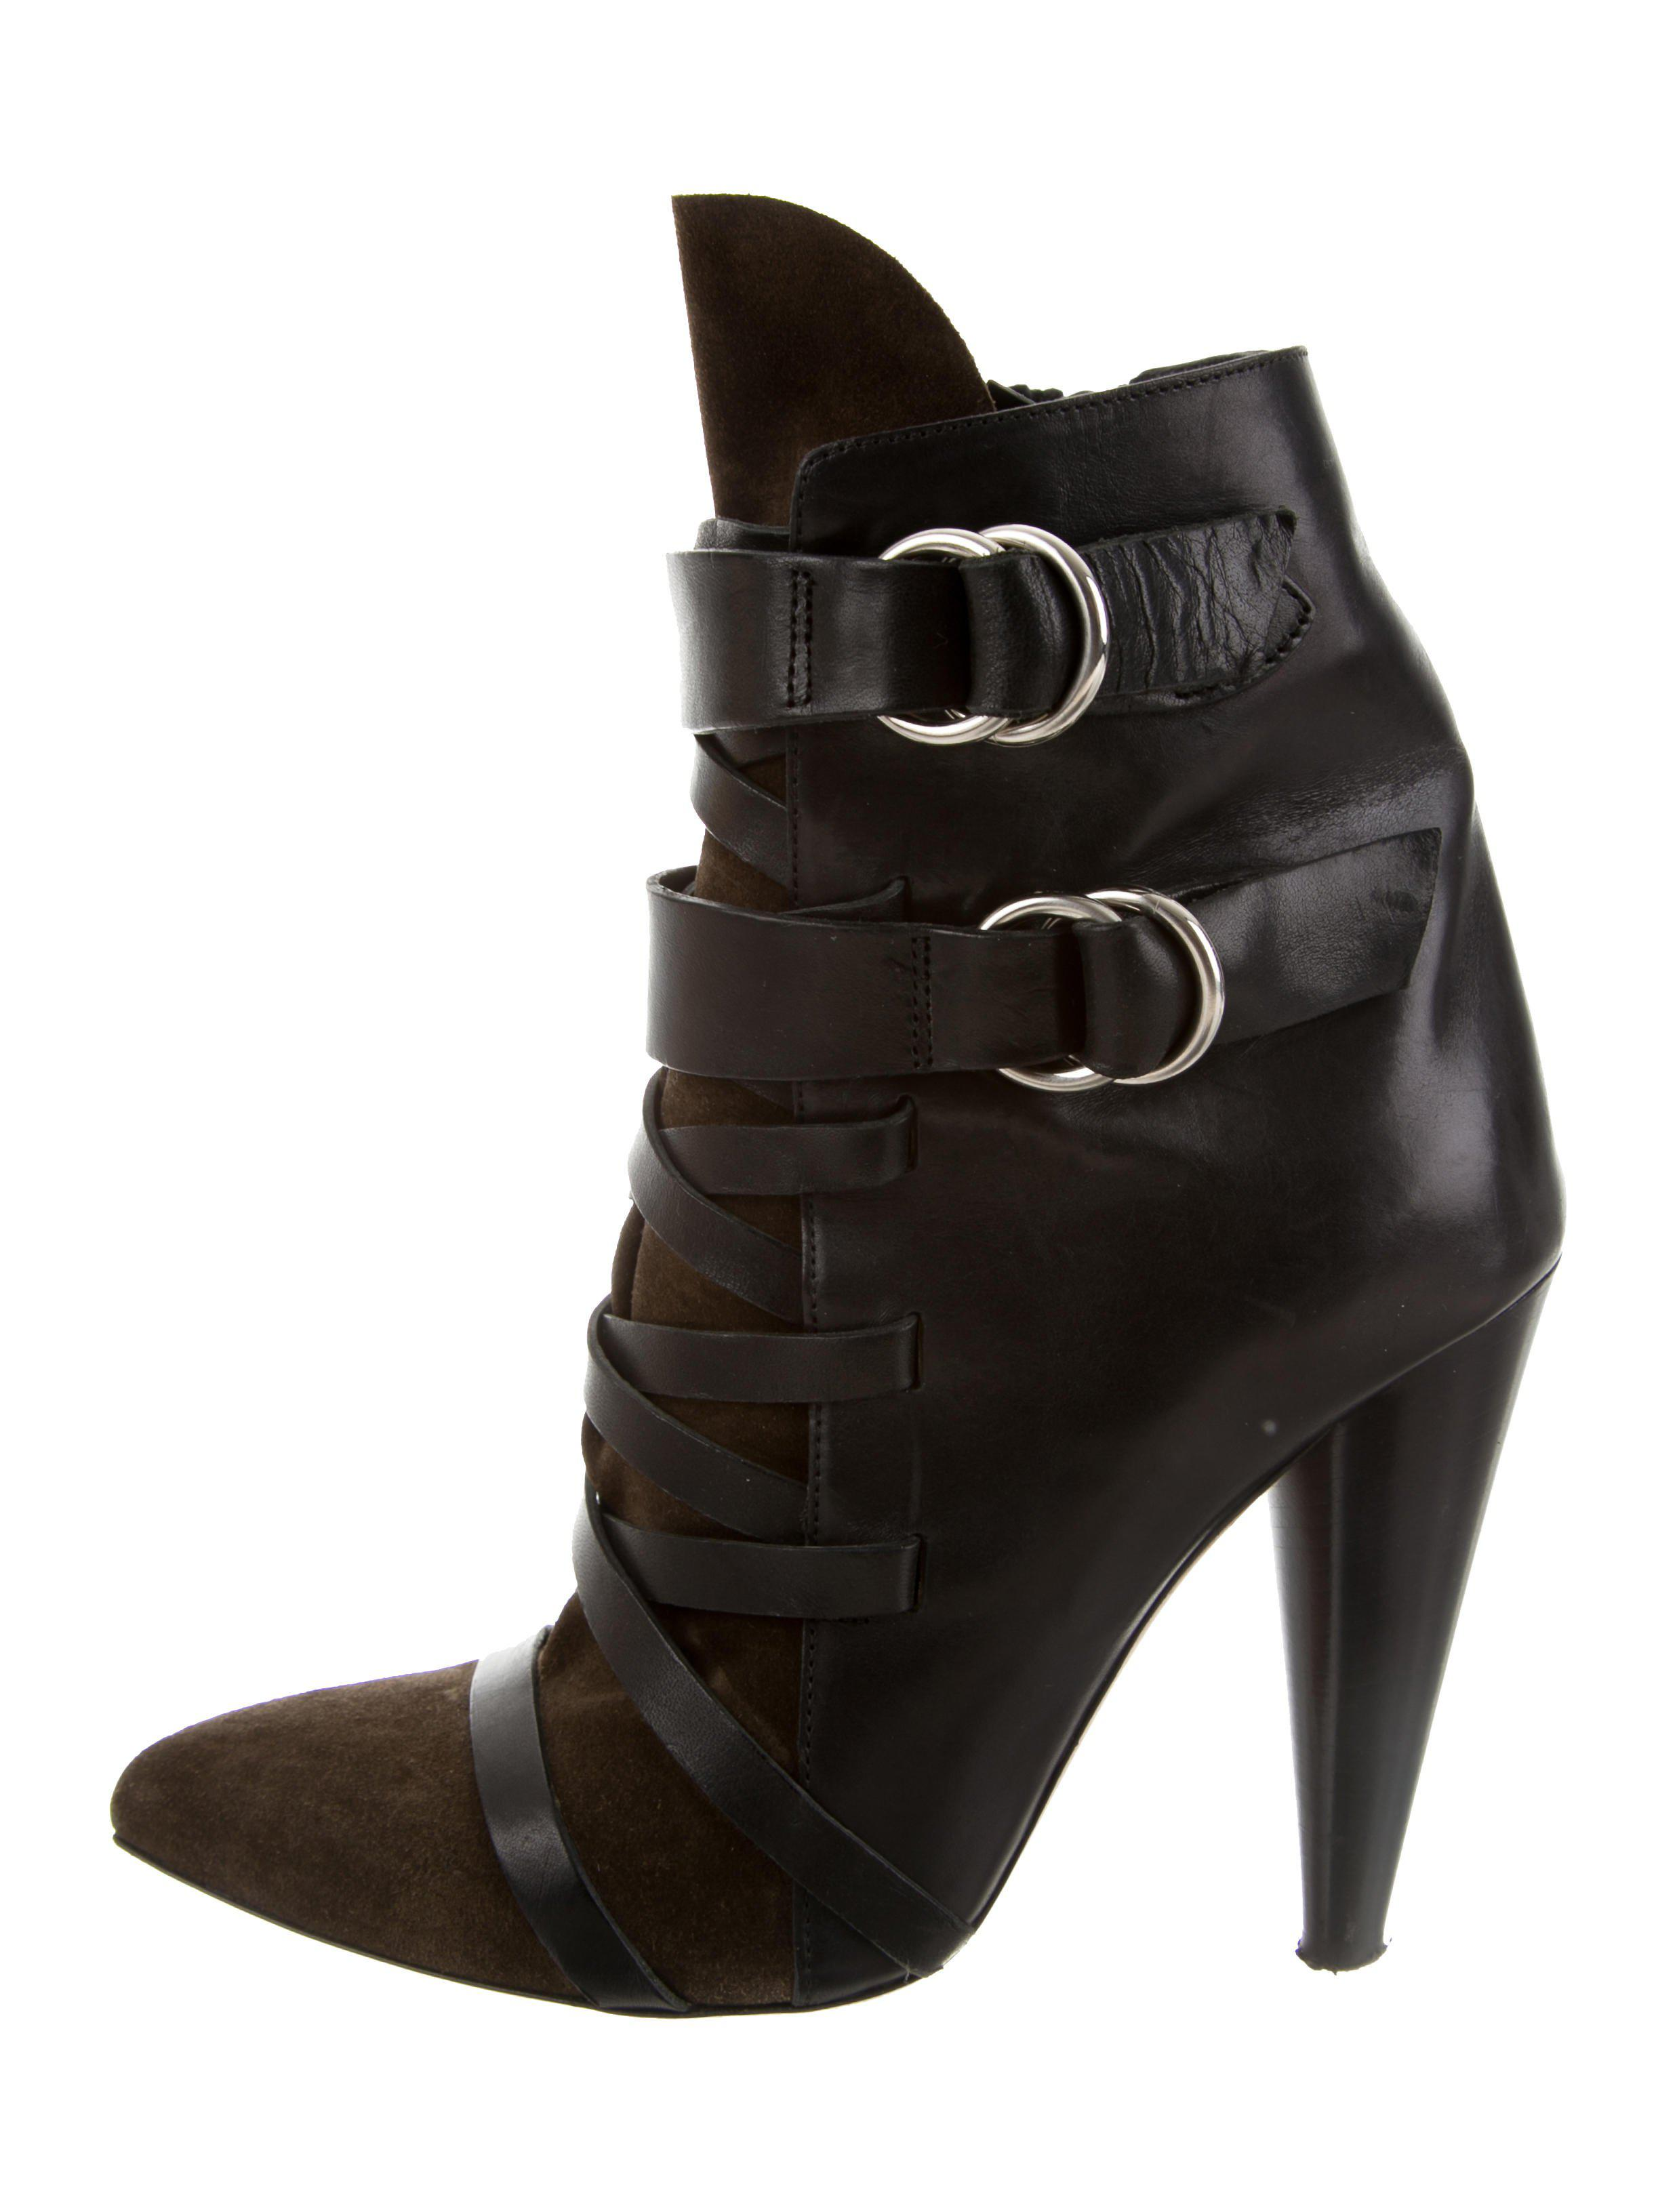 Isabel Marant Leather Lace-Up Ankle Boots clearance affordable recommend for sale cheap low shipping free shipping affordable cheap sale huge surprise BeLqVmUakn